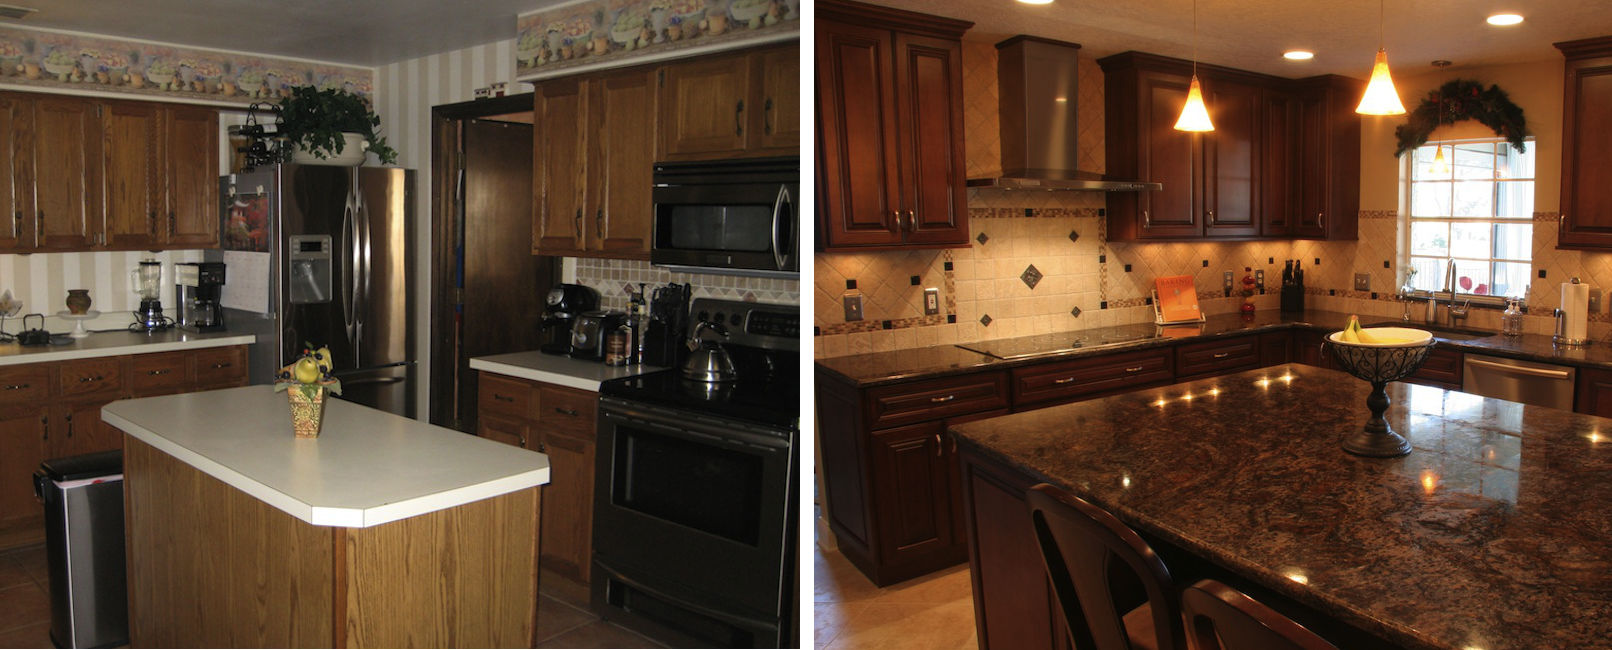 Before And After Monarch Kitchen Bath Design - Kitchen before and after remodels